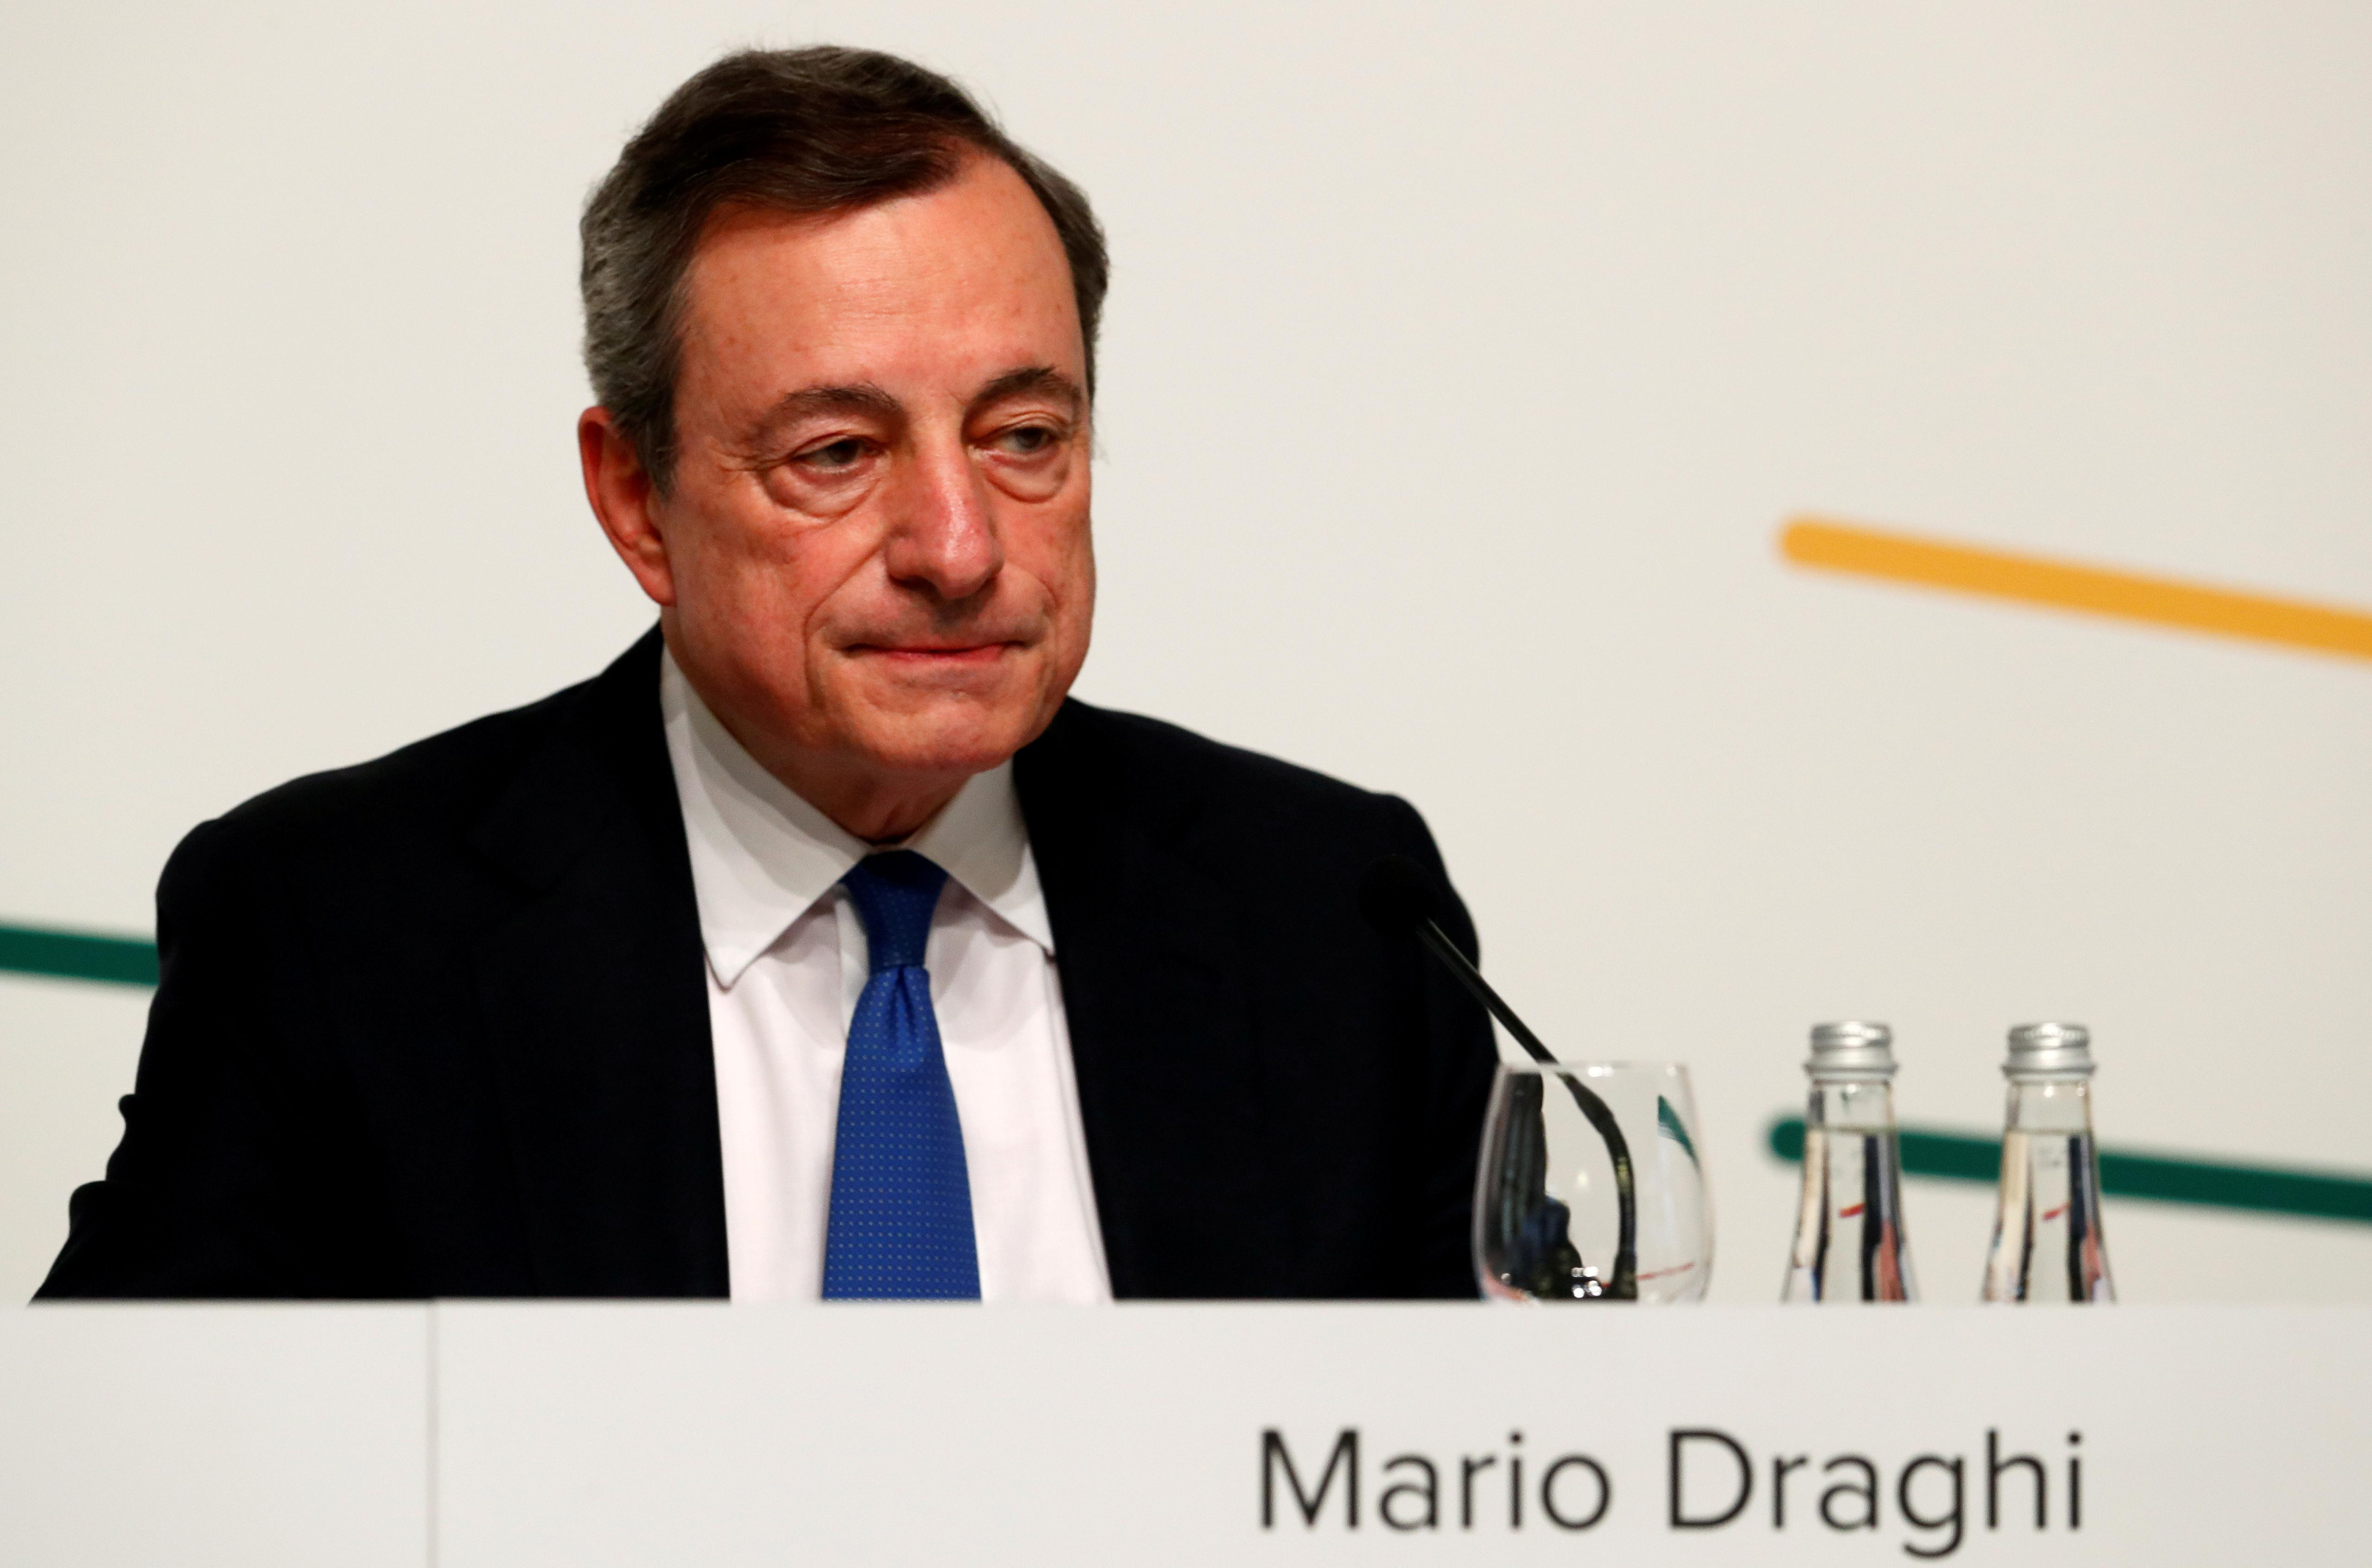 Daily Briefing: Even on way out, Draghi calls the shots